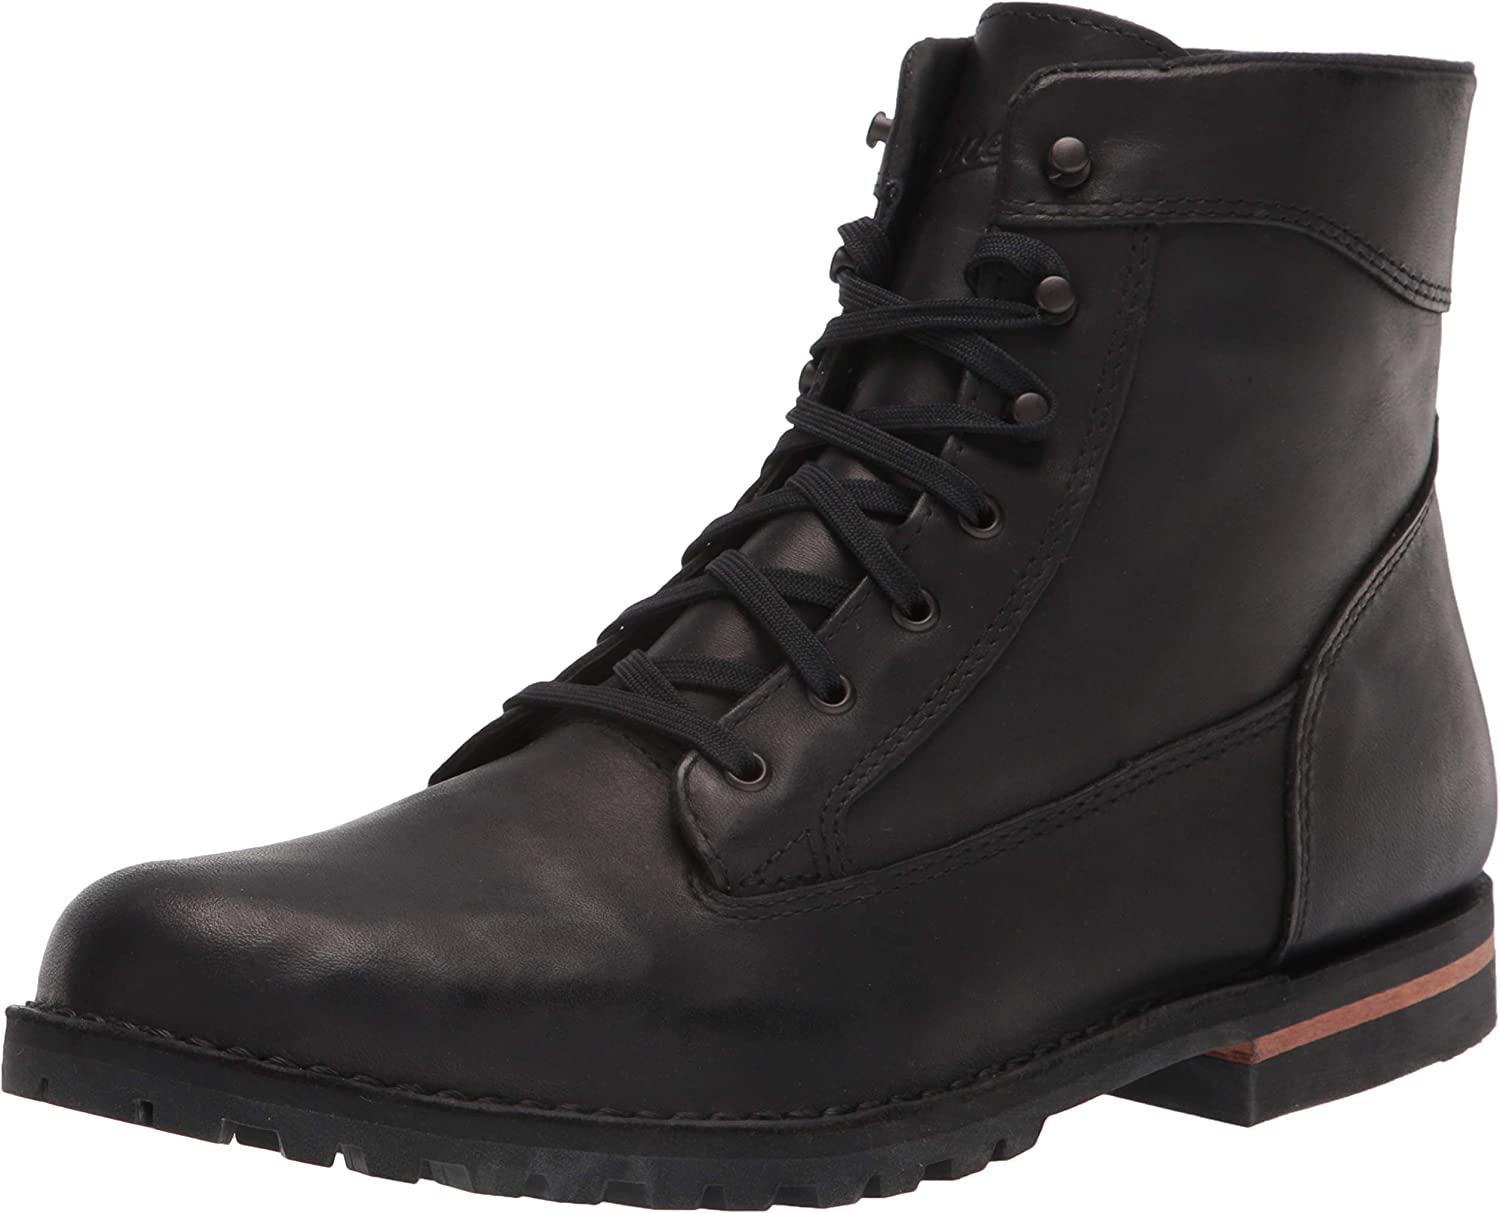 Cheap Discount is also underway sale Danner womens Ankle Boot Black US 6